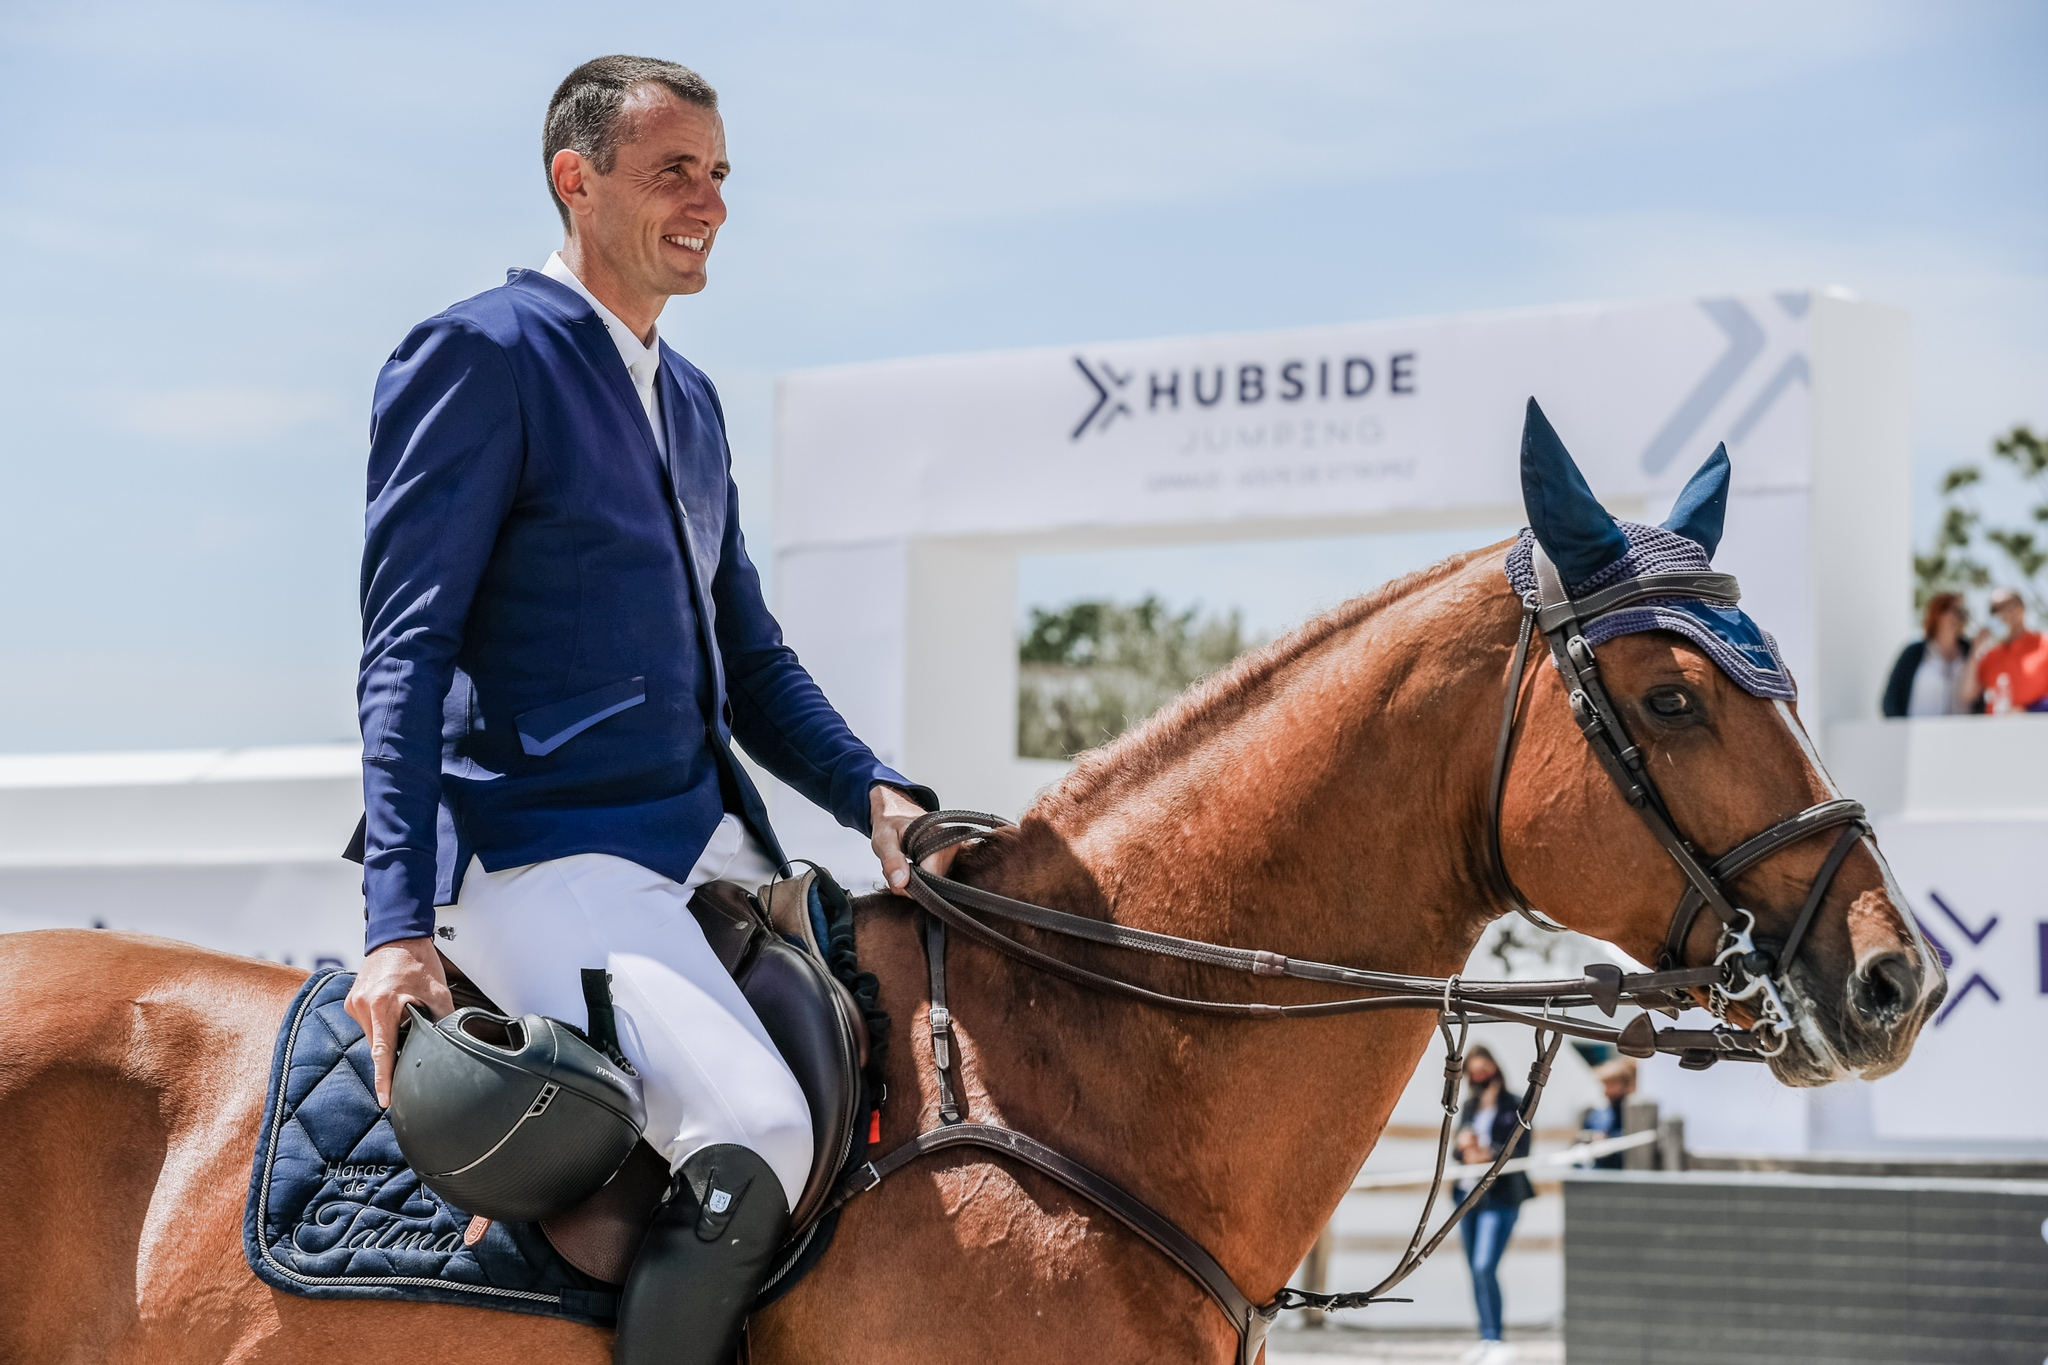 Gregory Wathelet takes magic Grand Prix victory in St Tropez